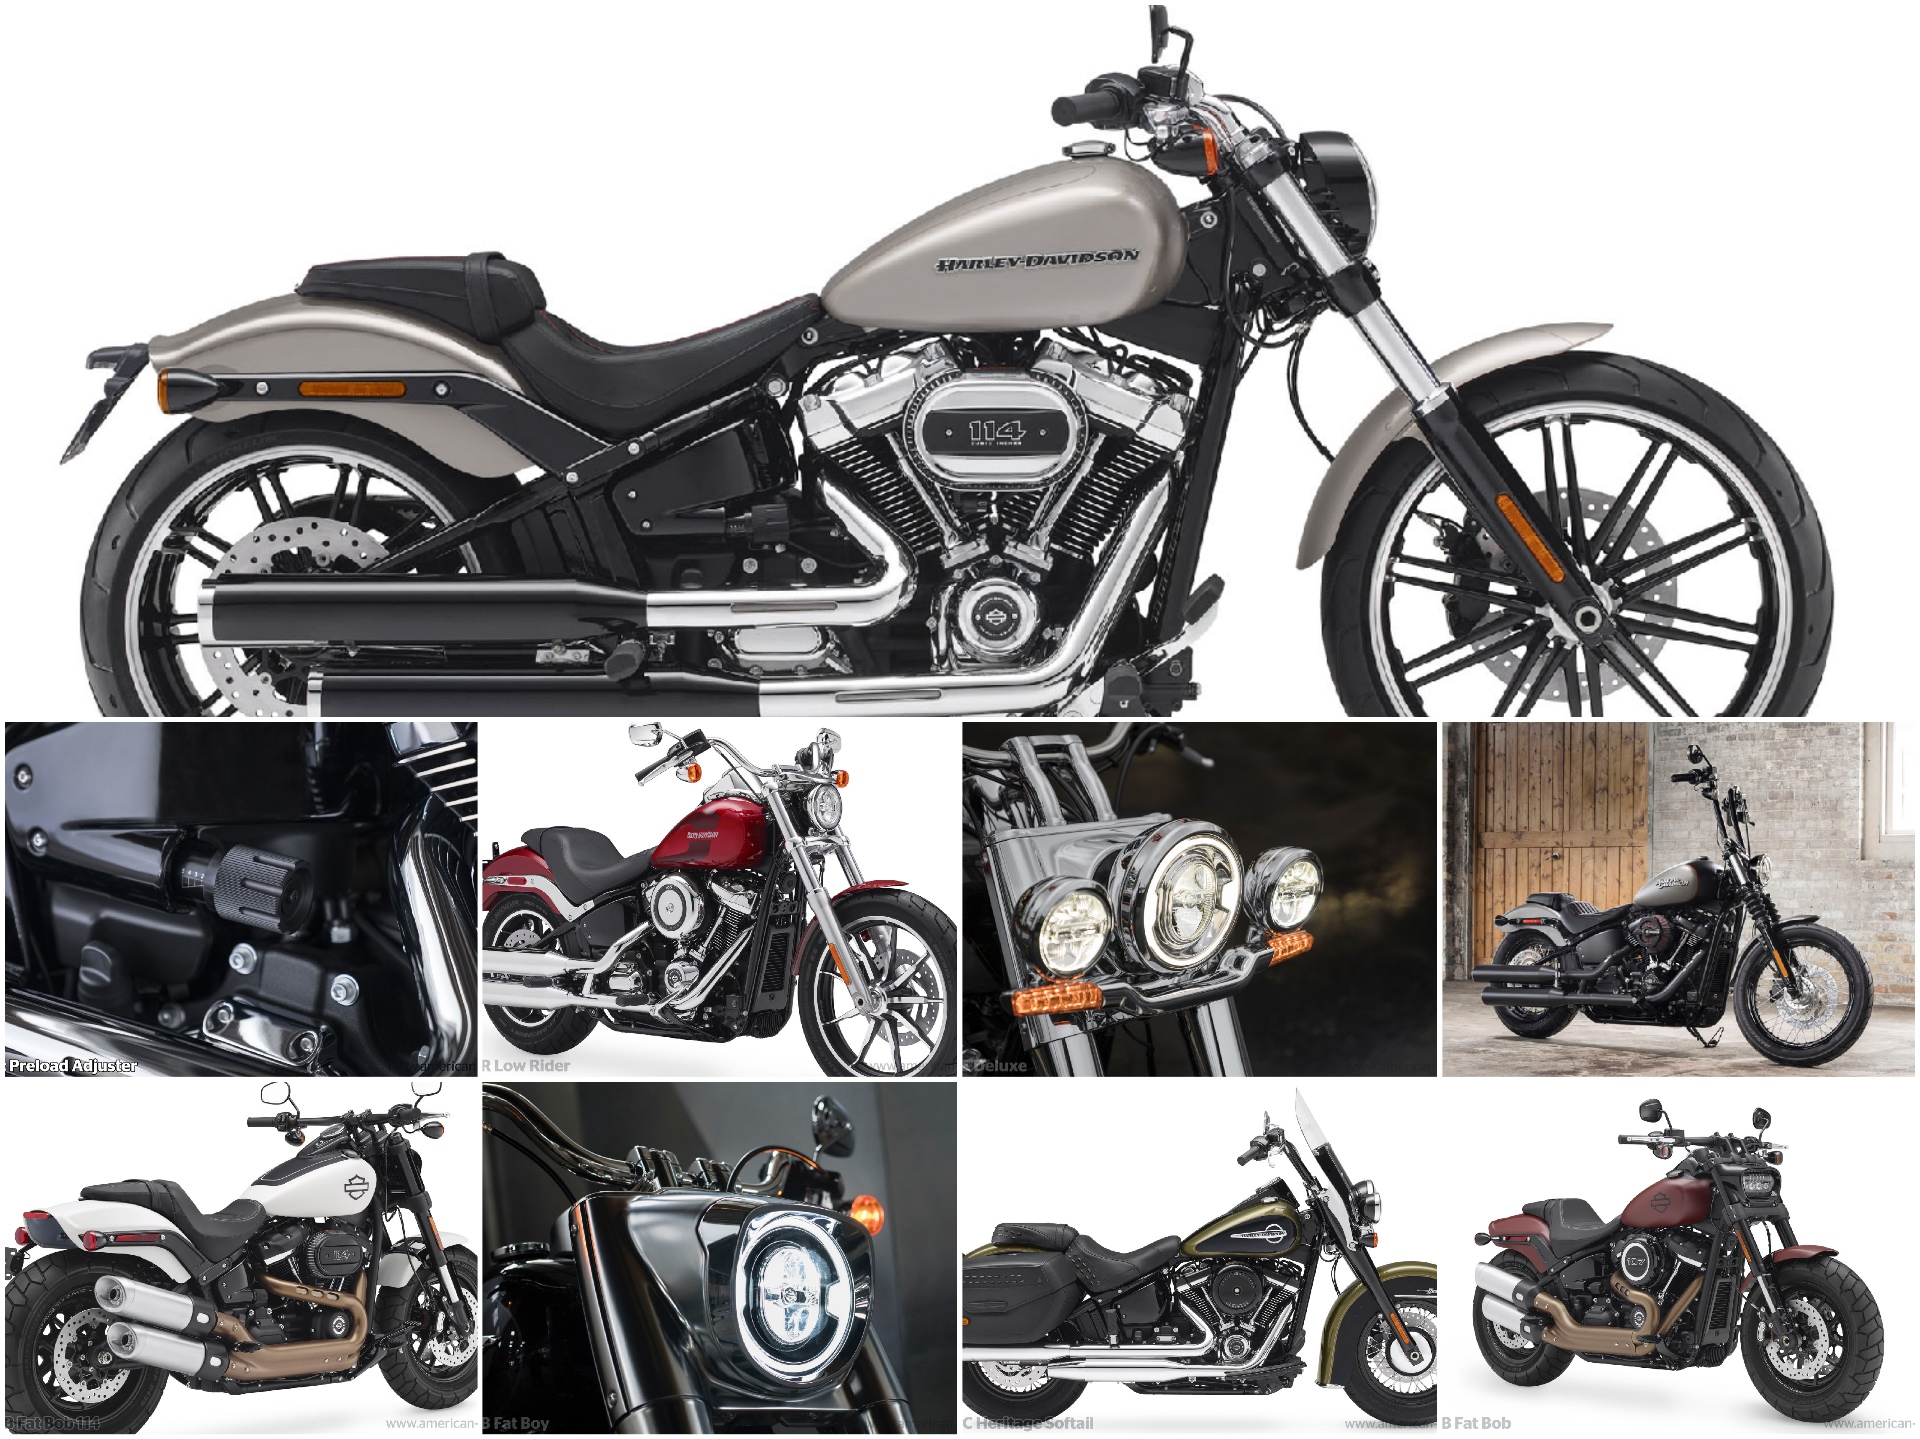 Harley-Davidson 2018: Massive Changes to Dyna and Softail Ranges